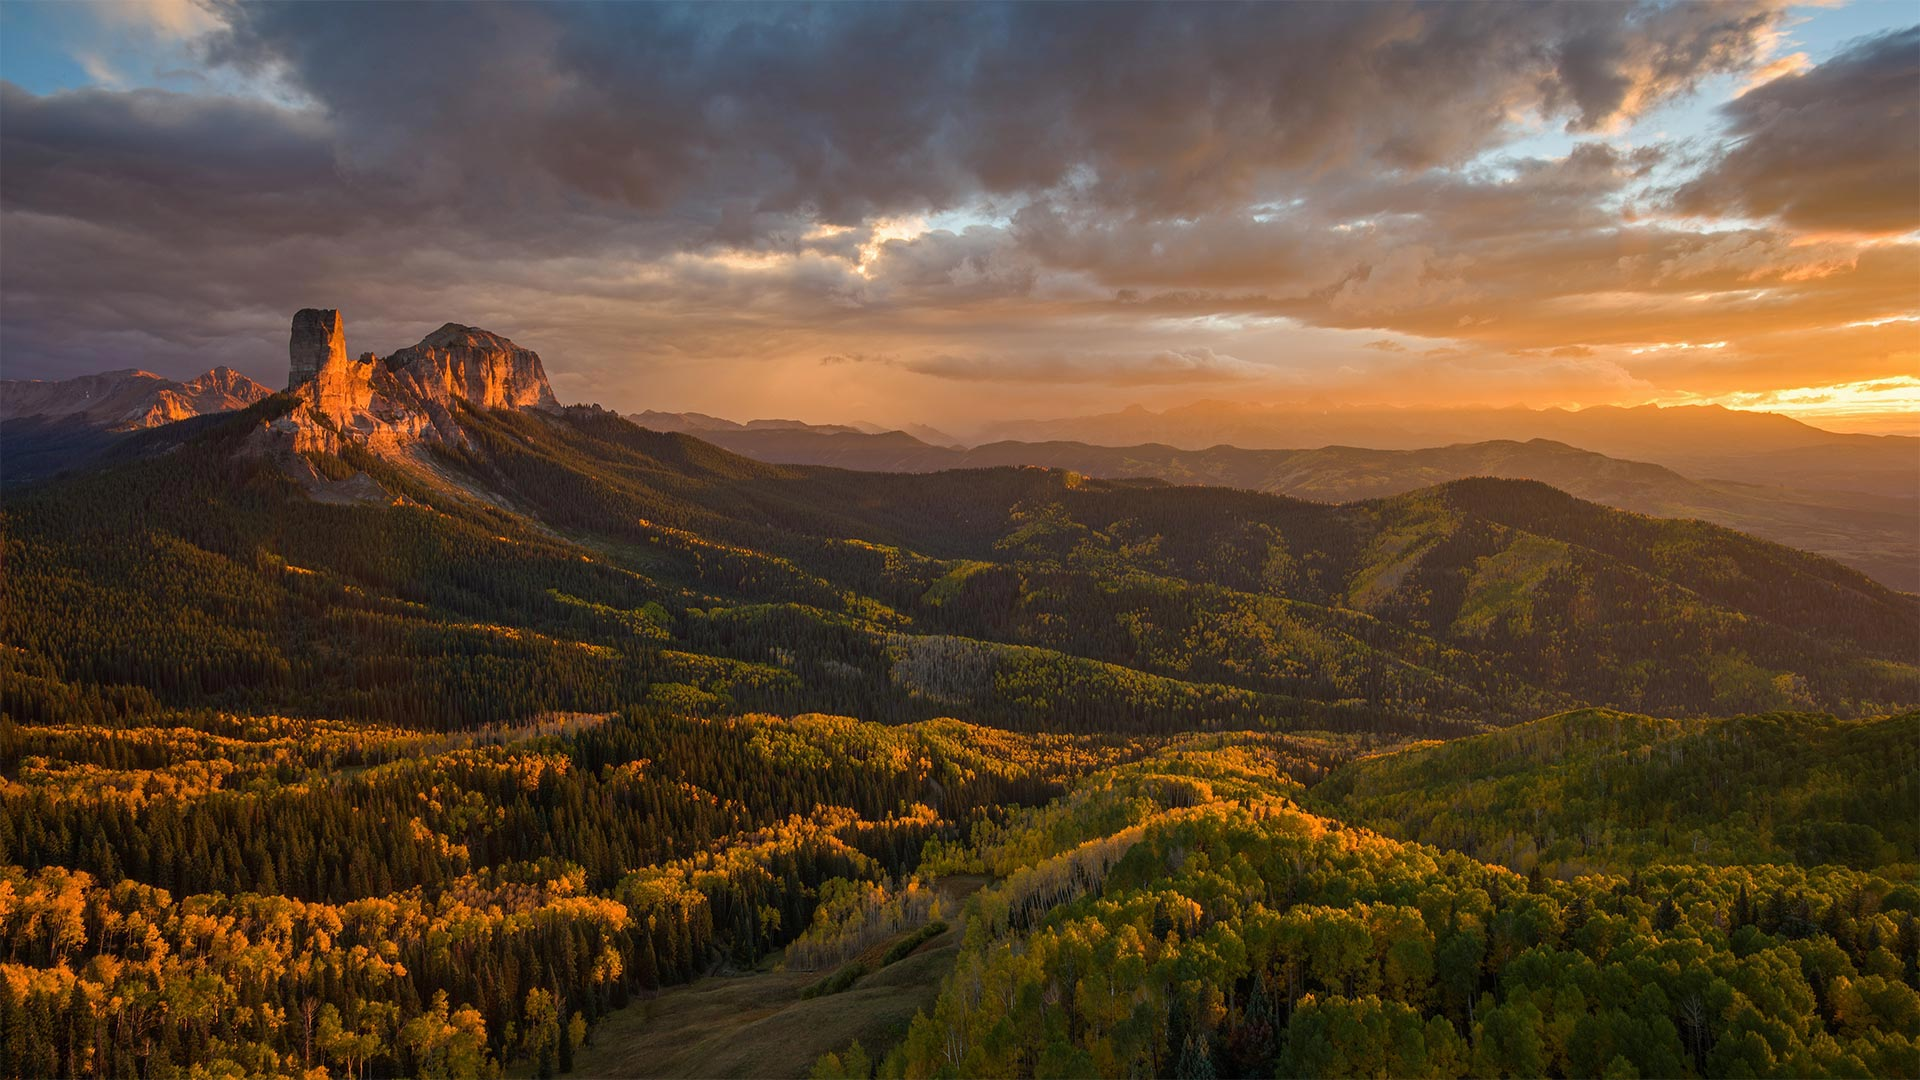 Chimney Rock and Uncompahgre National Forest, Colorado (© Cory Marshall/Tandem Stills + Motion)(Bing United States)